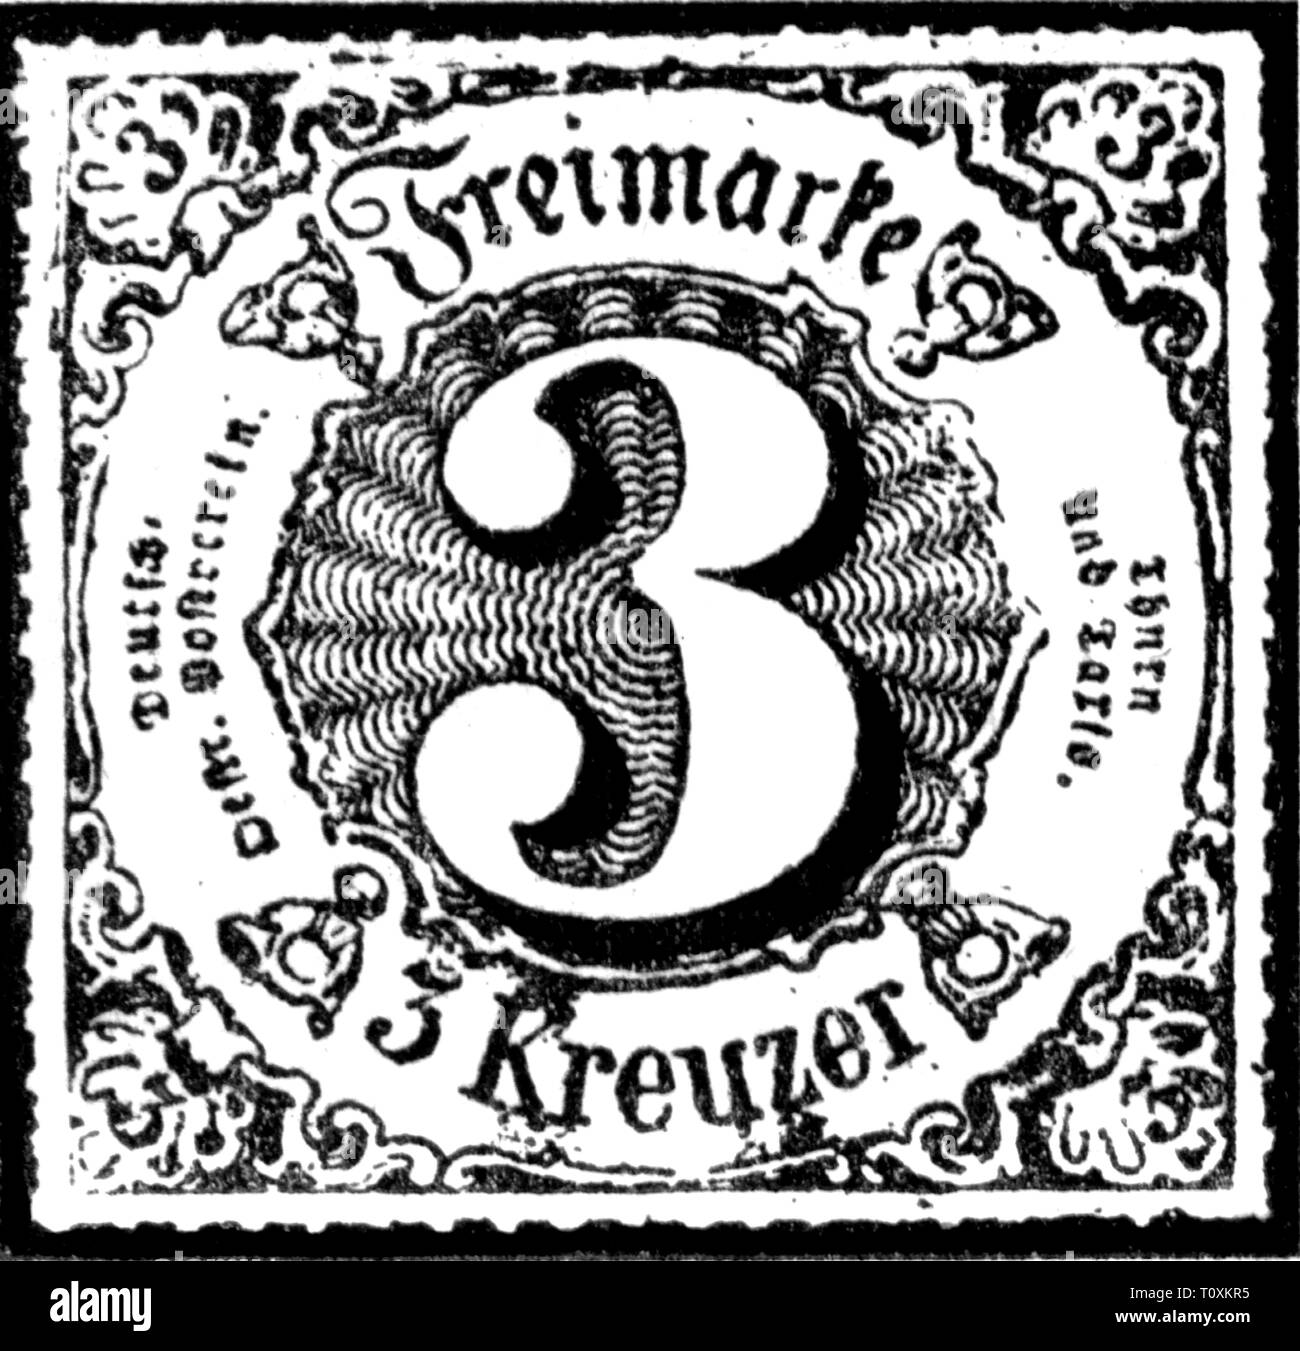 mail, postage stamps, Germany, Thurn-und-Taxis-Post, 3 Kreuzer postage stamp, Southern district, 1866, Additional-Rights-Clearance-Info-Not-Available - Stock Image